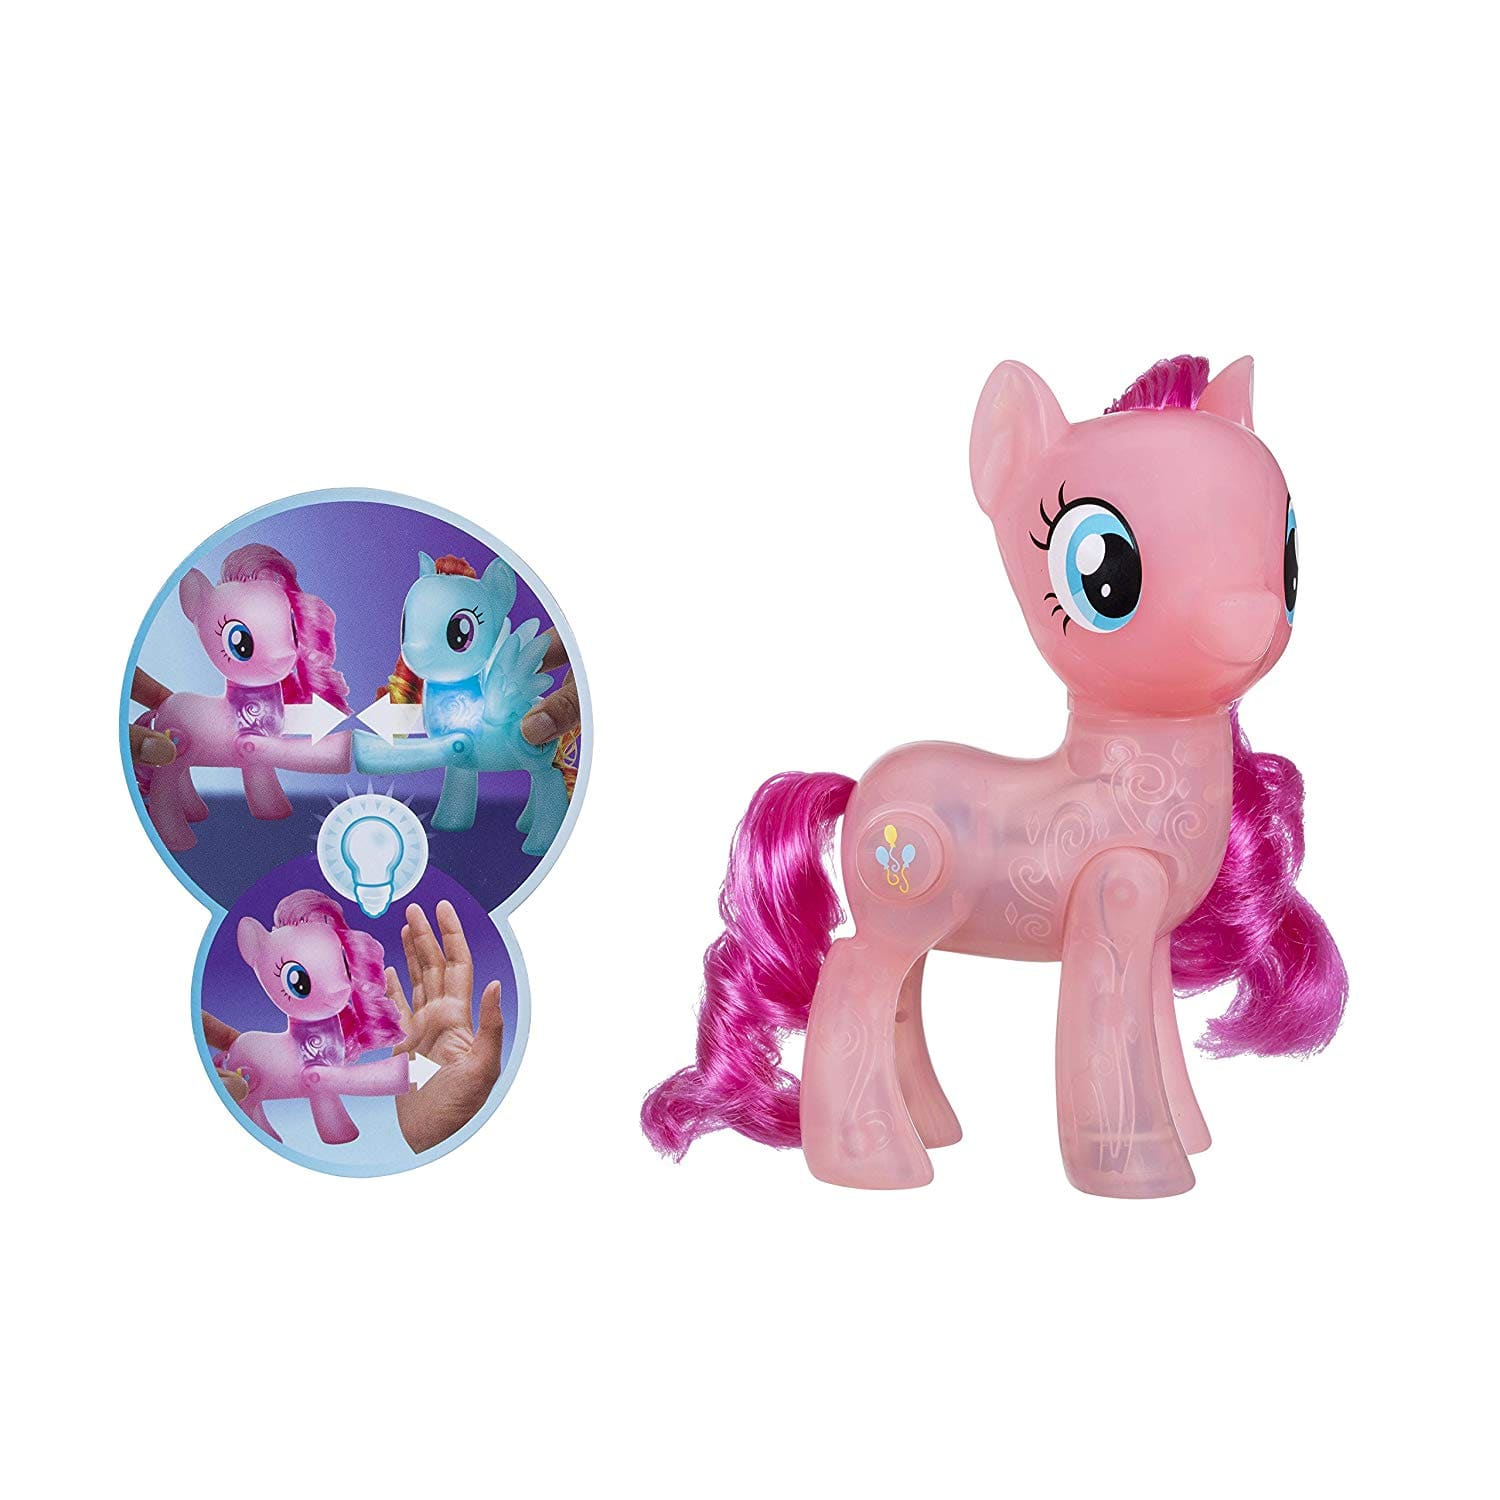 My Little Pony Shining Friends Pinkie Pie Figure $3.24